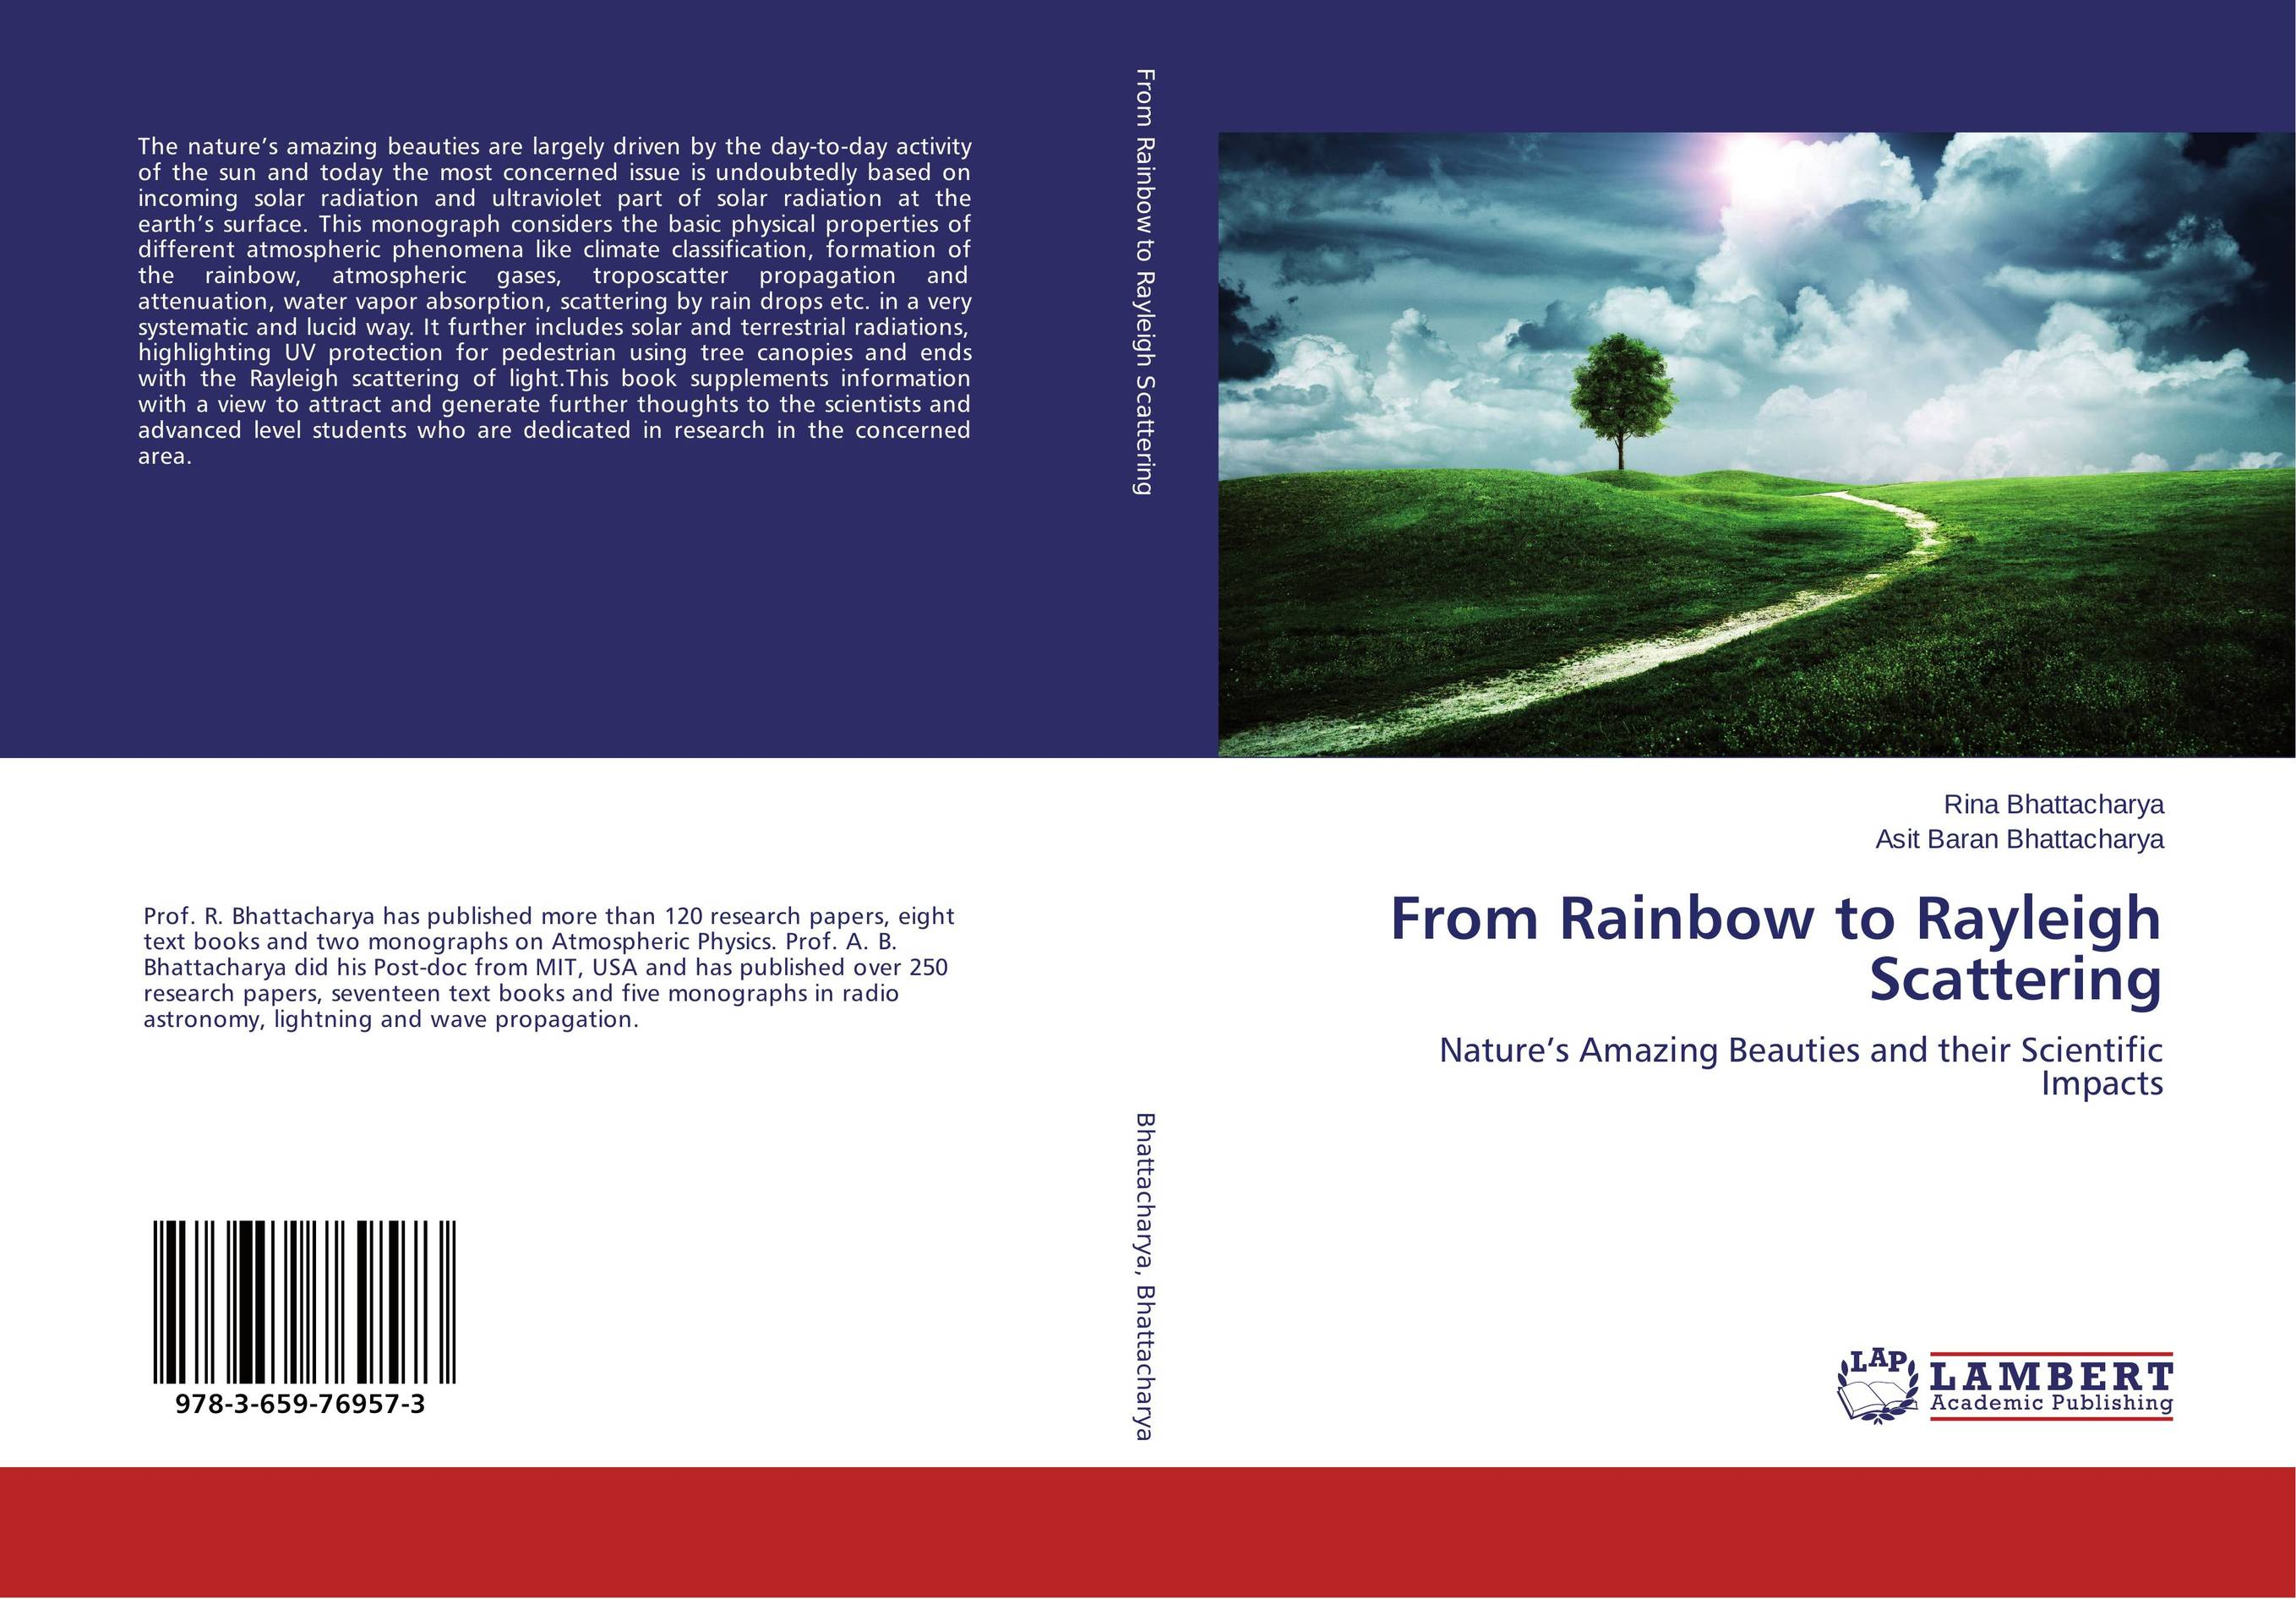 From Rainbow to Rayleigh Scattering driven to distraction